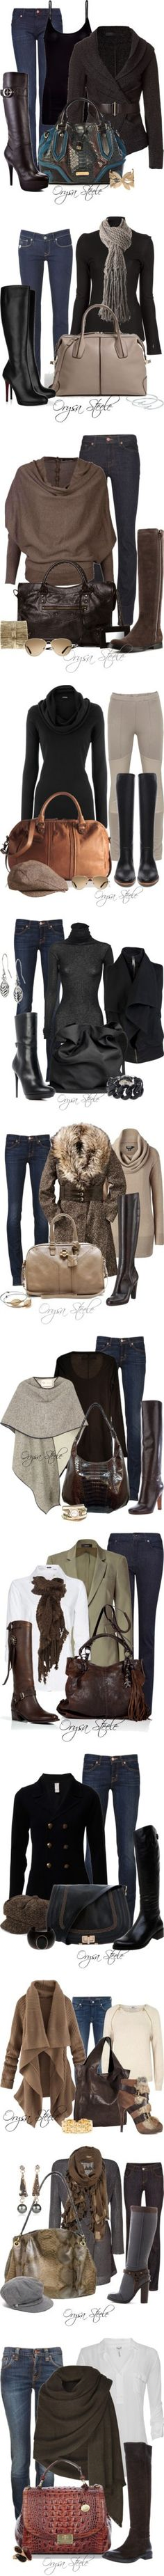 Fall outfits.